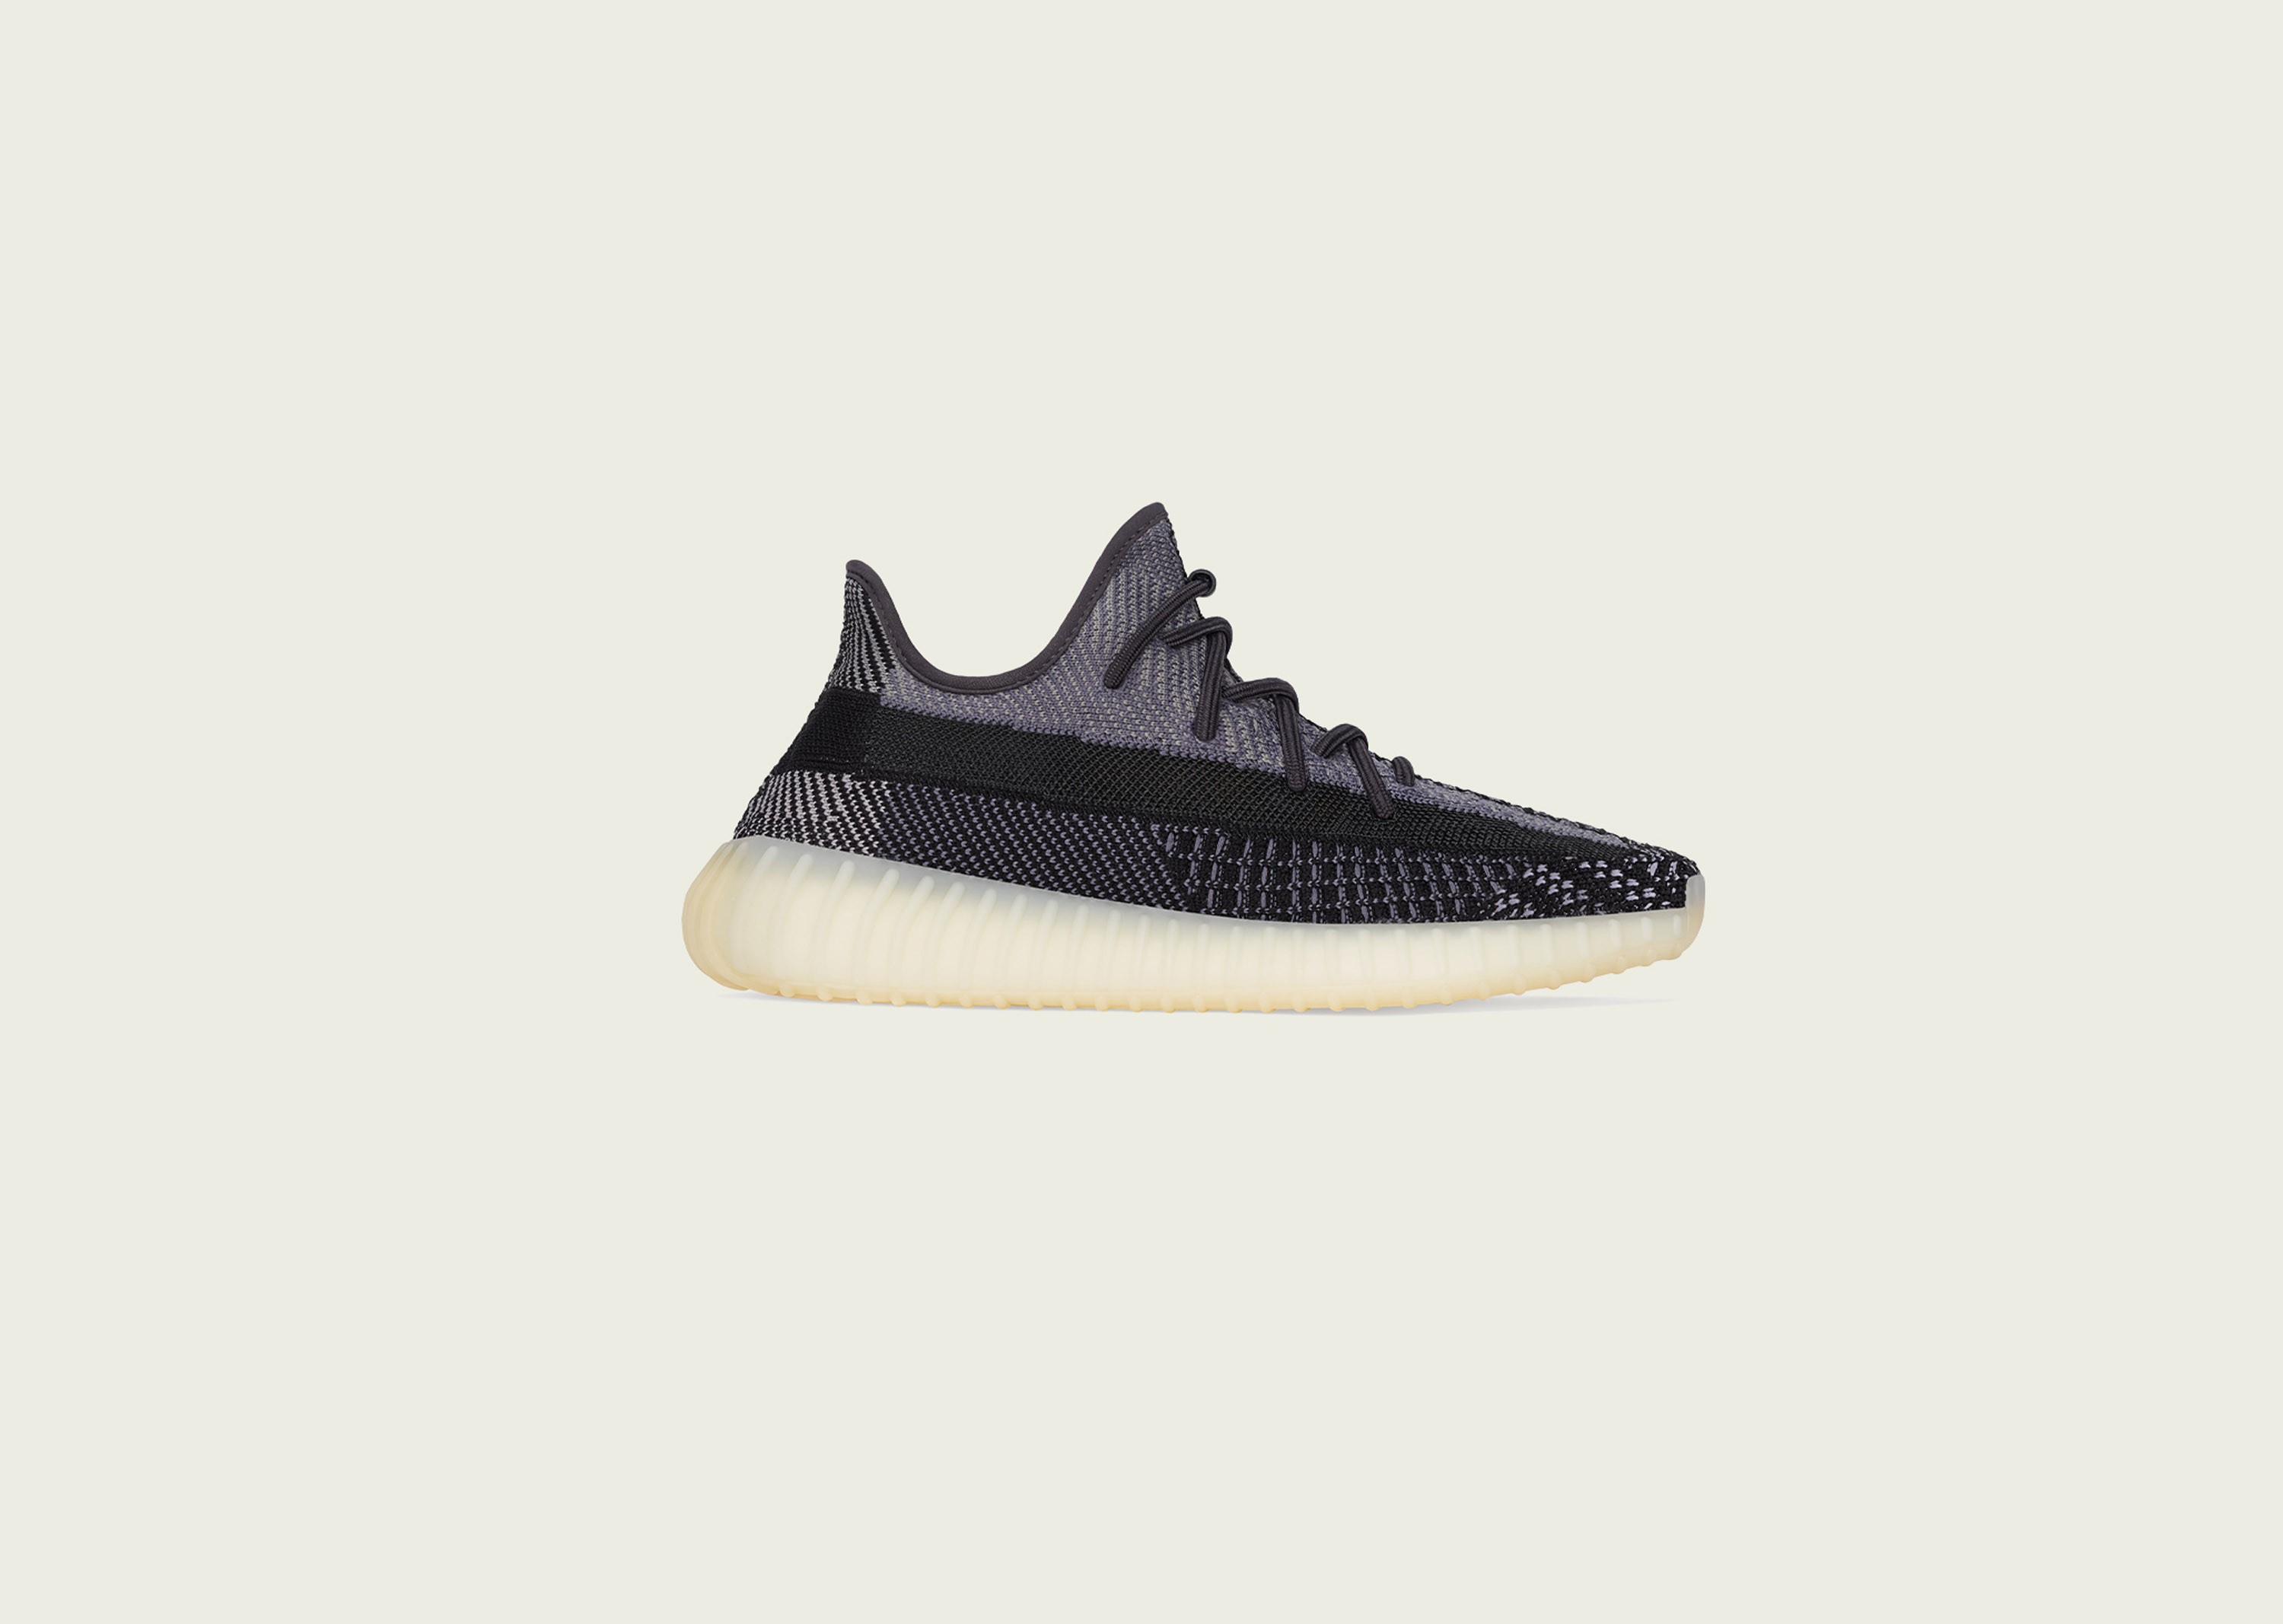 yeezy_350_carbon_blog_0001_YEEZY_BOOST_350_V2_CARBON_Right_Social_IG_1200x1200